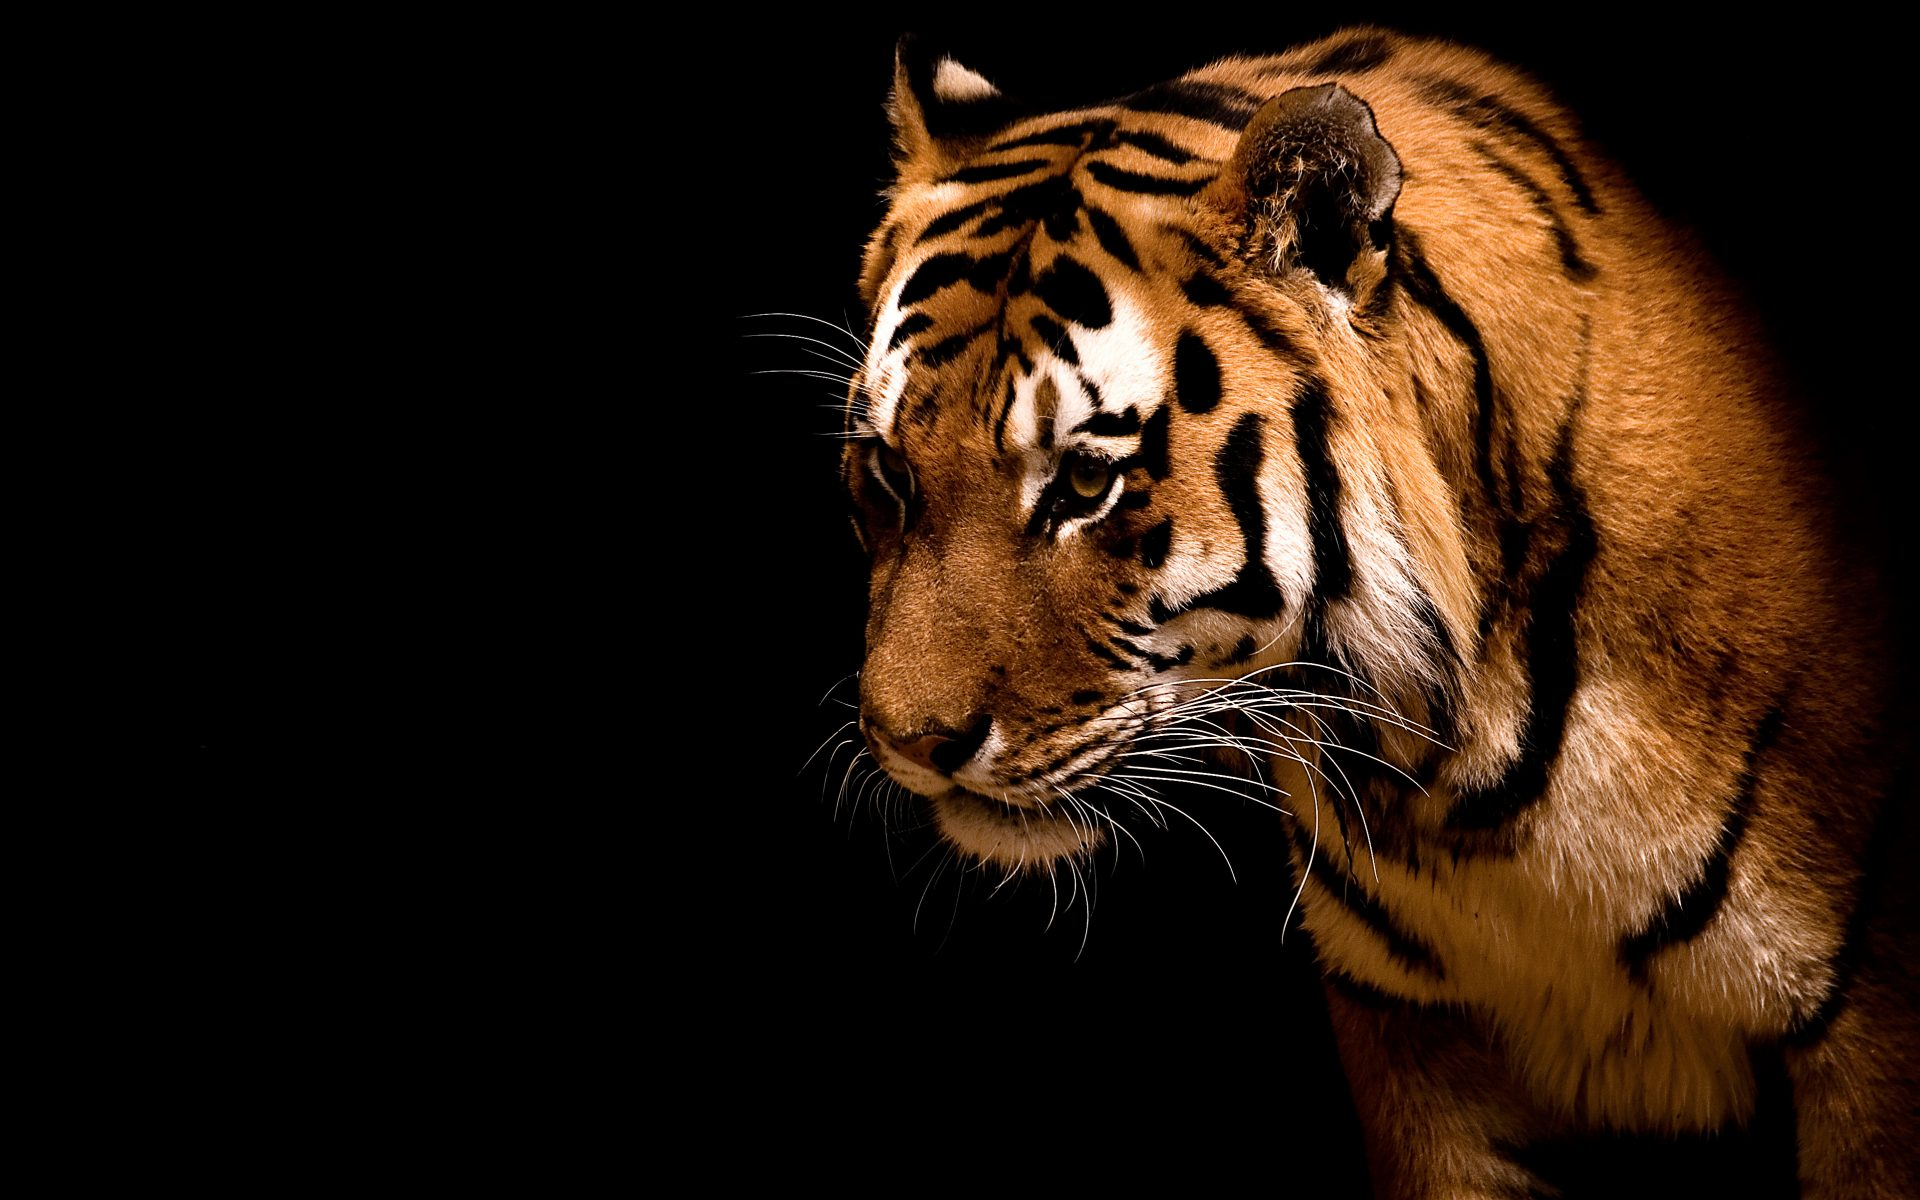 Fearless and Beautiful Tiger 1920x1200